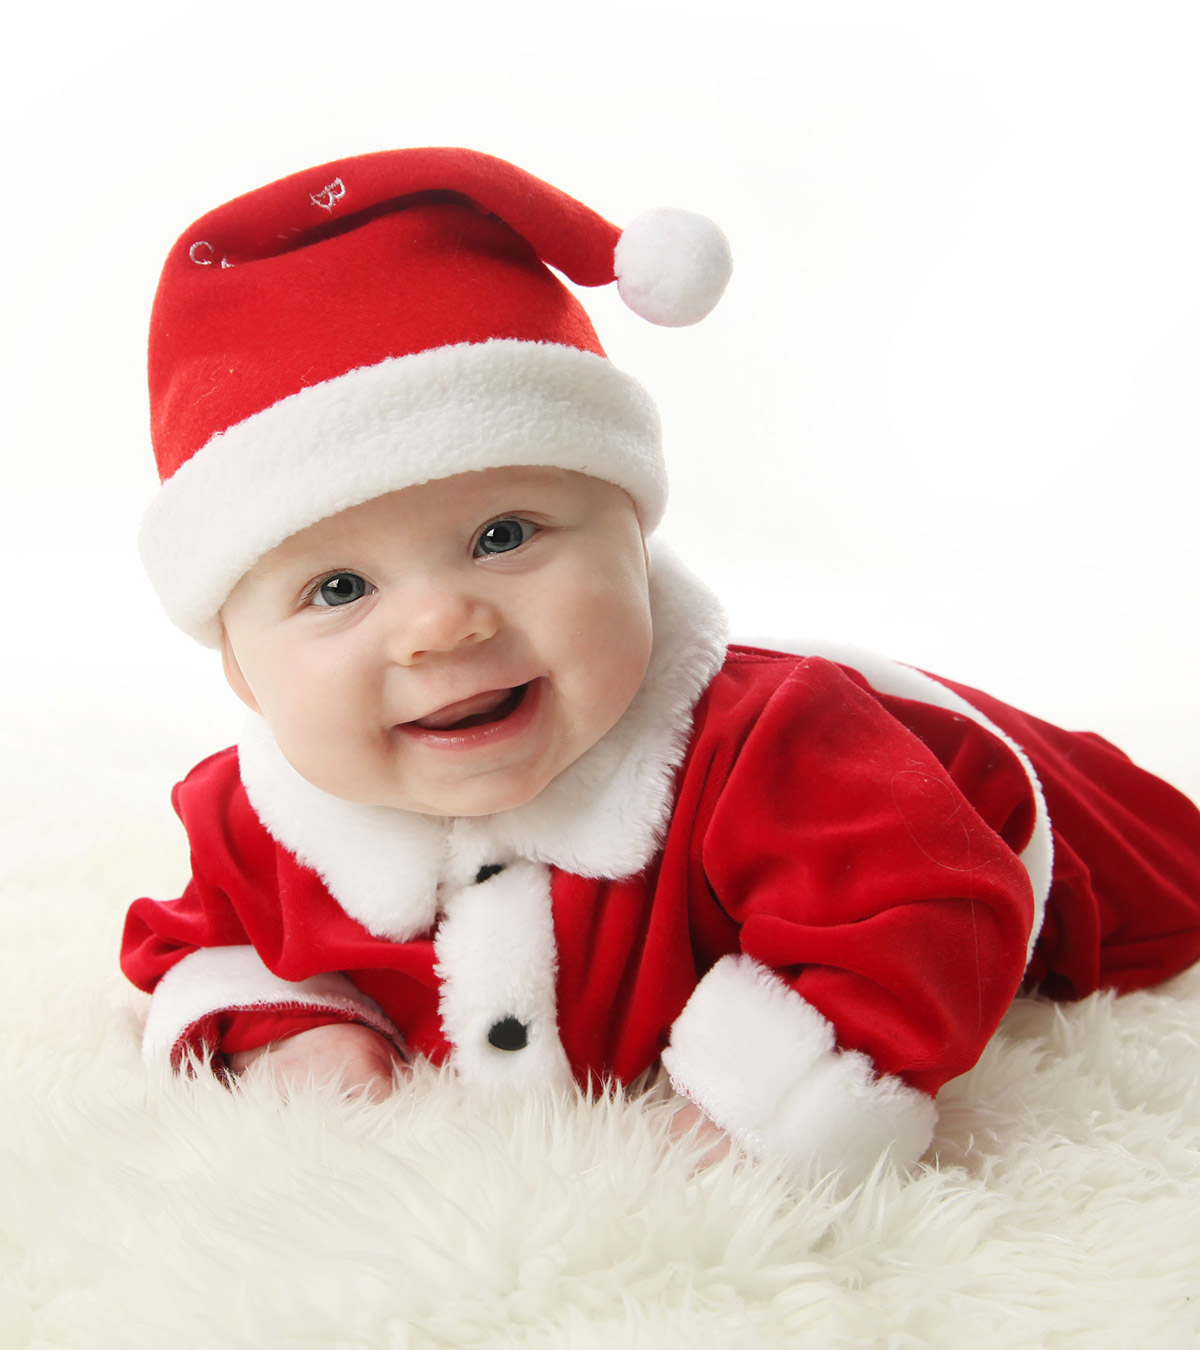 5 Cute Christmas Outfits For Babies